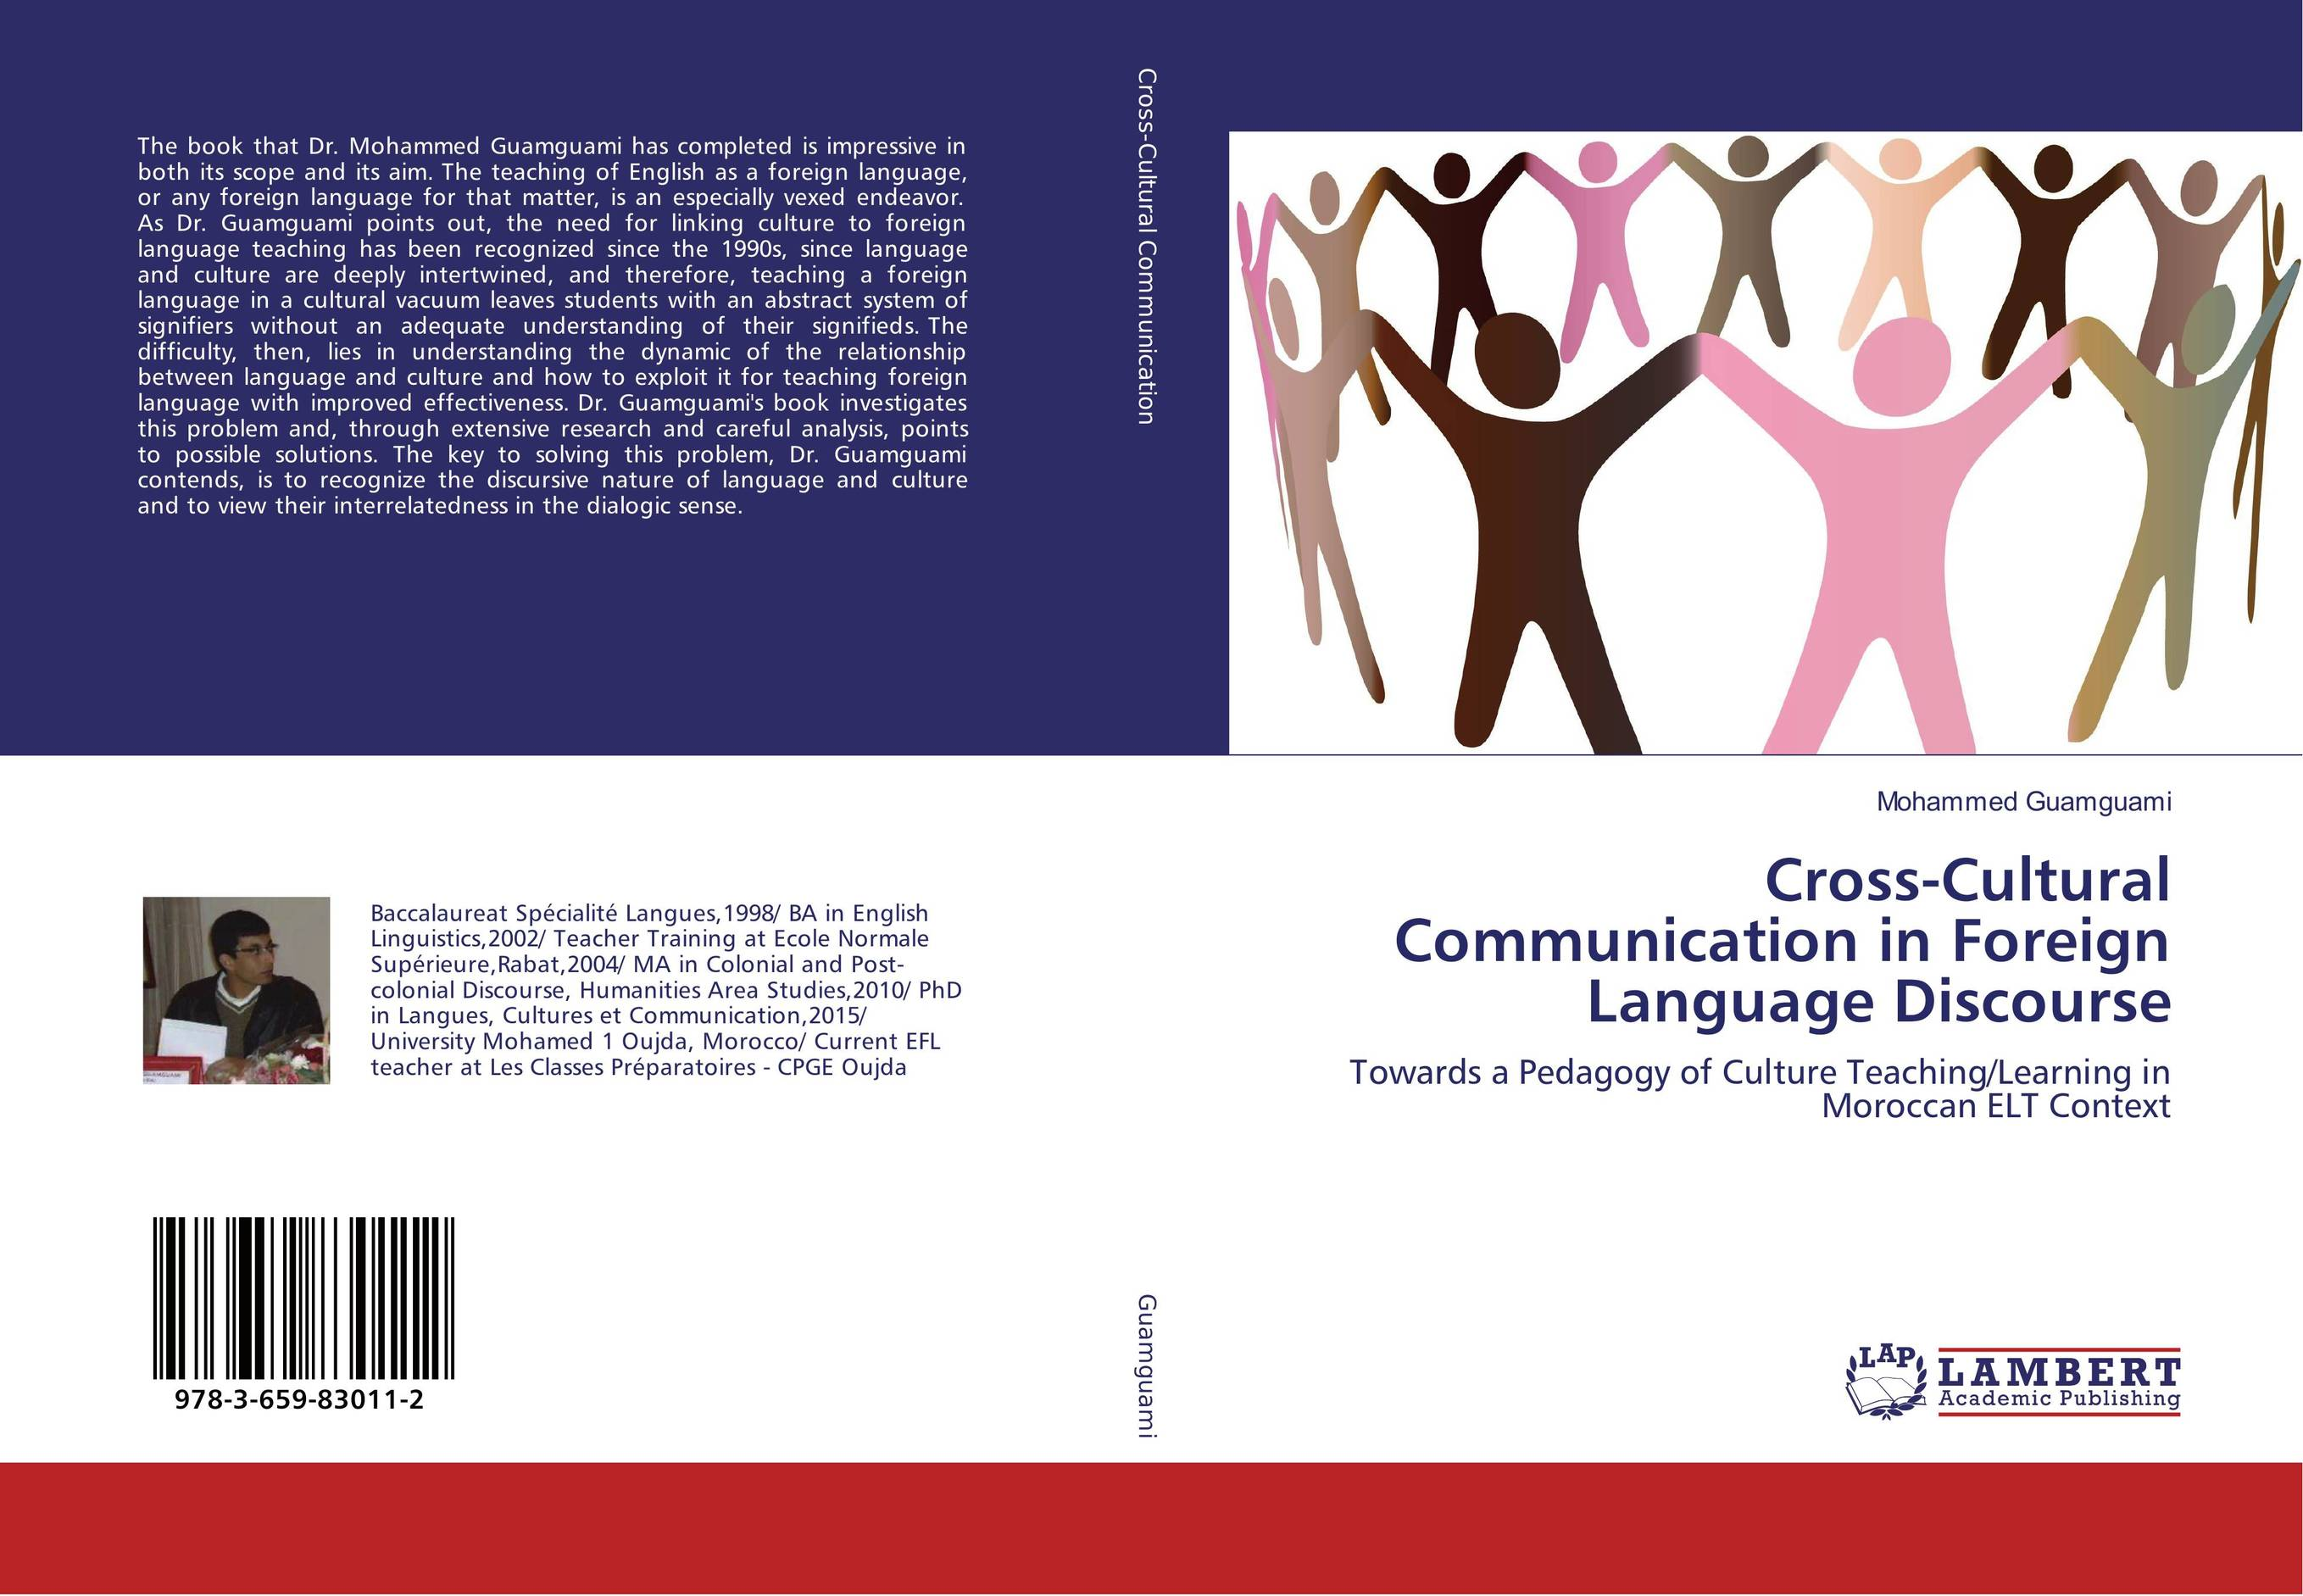 Cross-Cultural Communication in Foreign Language Discourse tools of sustainable cultural heritage management in aksum ethiopia